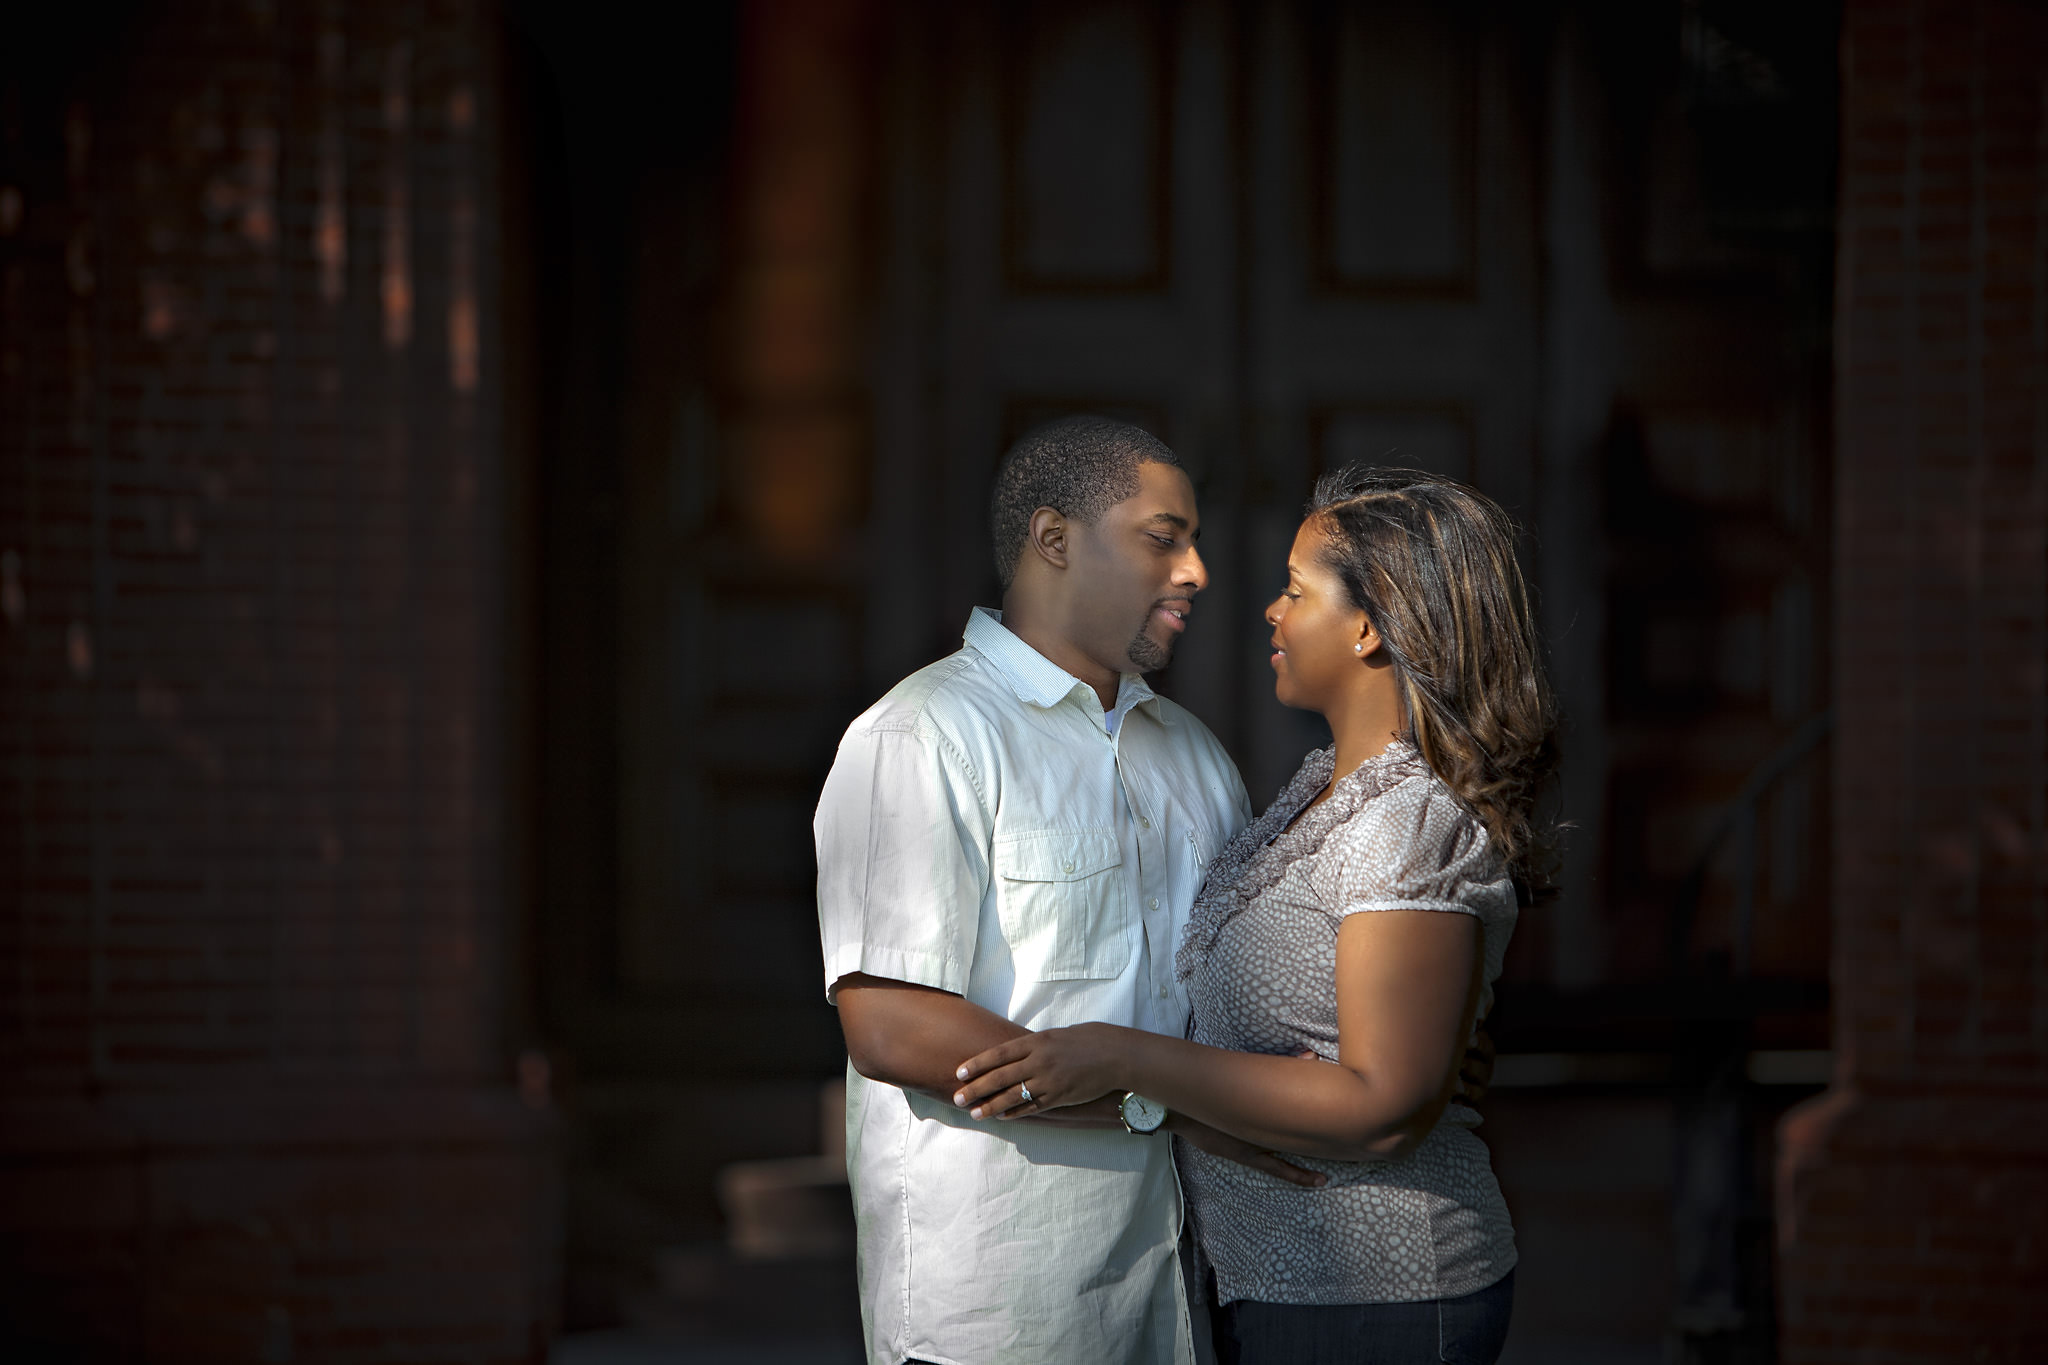 newport news fine art wedding photographer wedding gallery #: 70